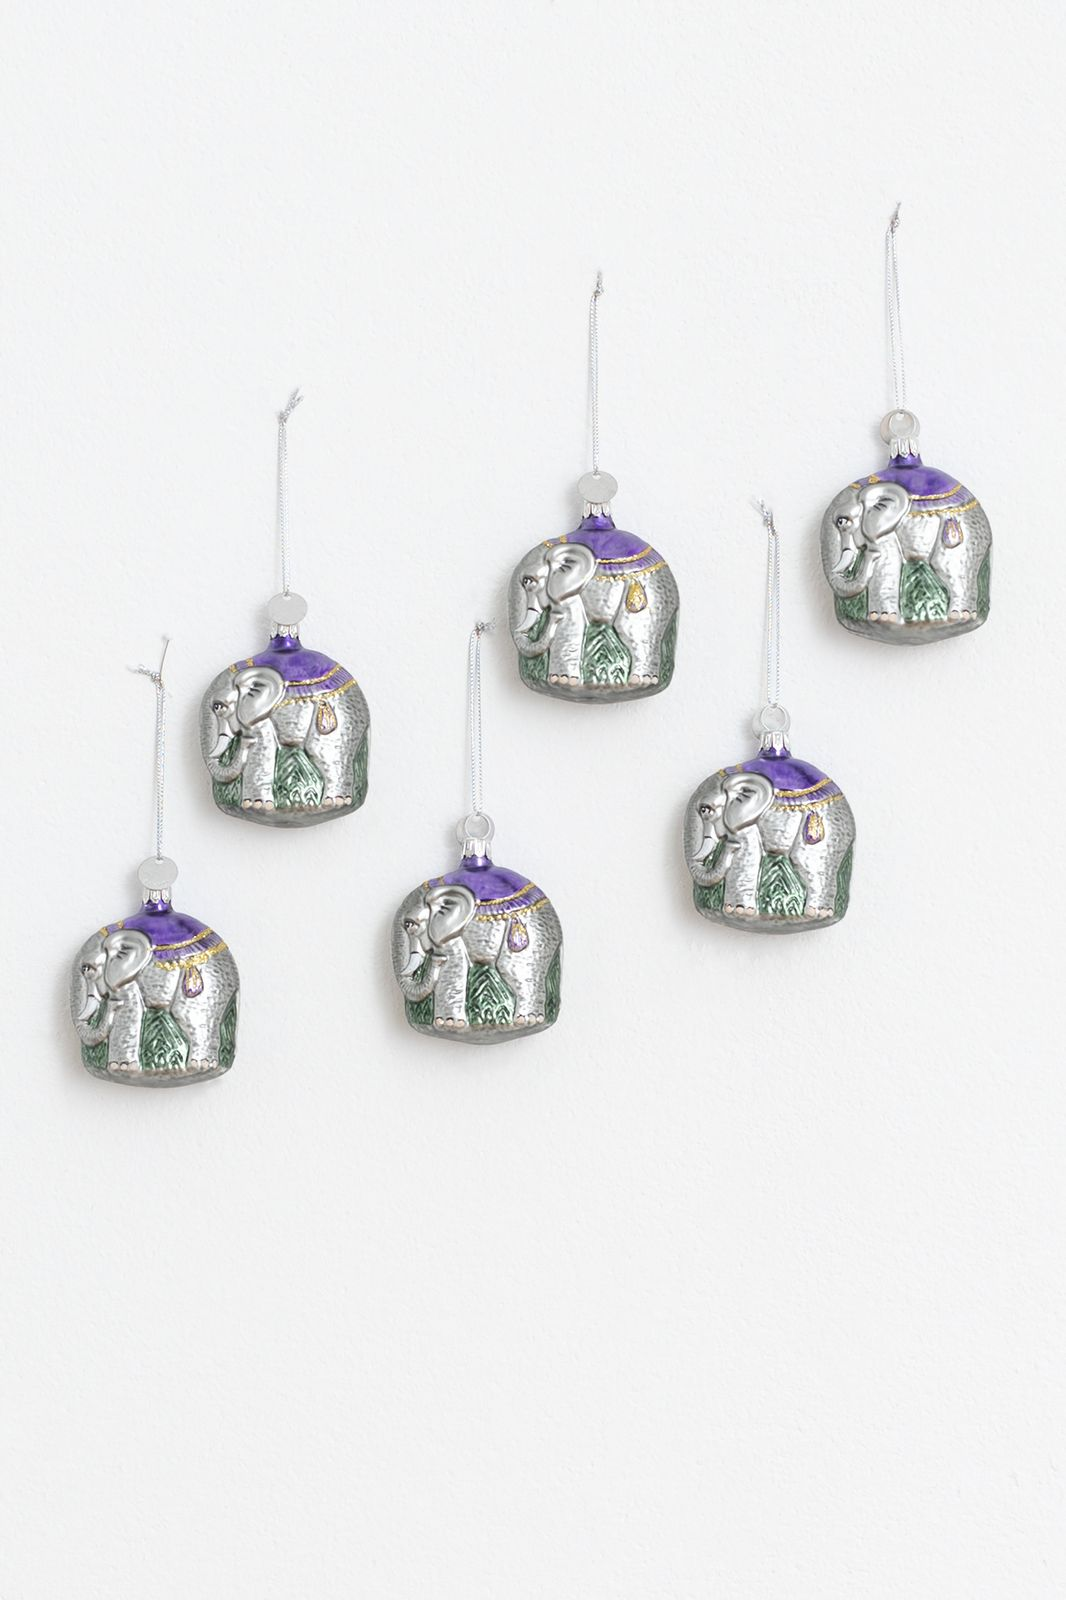 Kerst ornament olifant